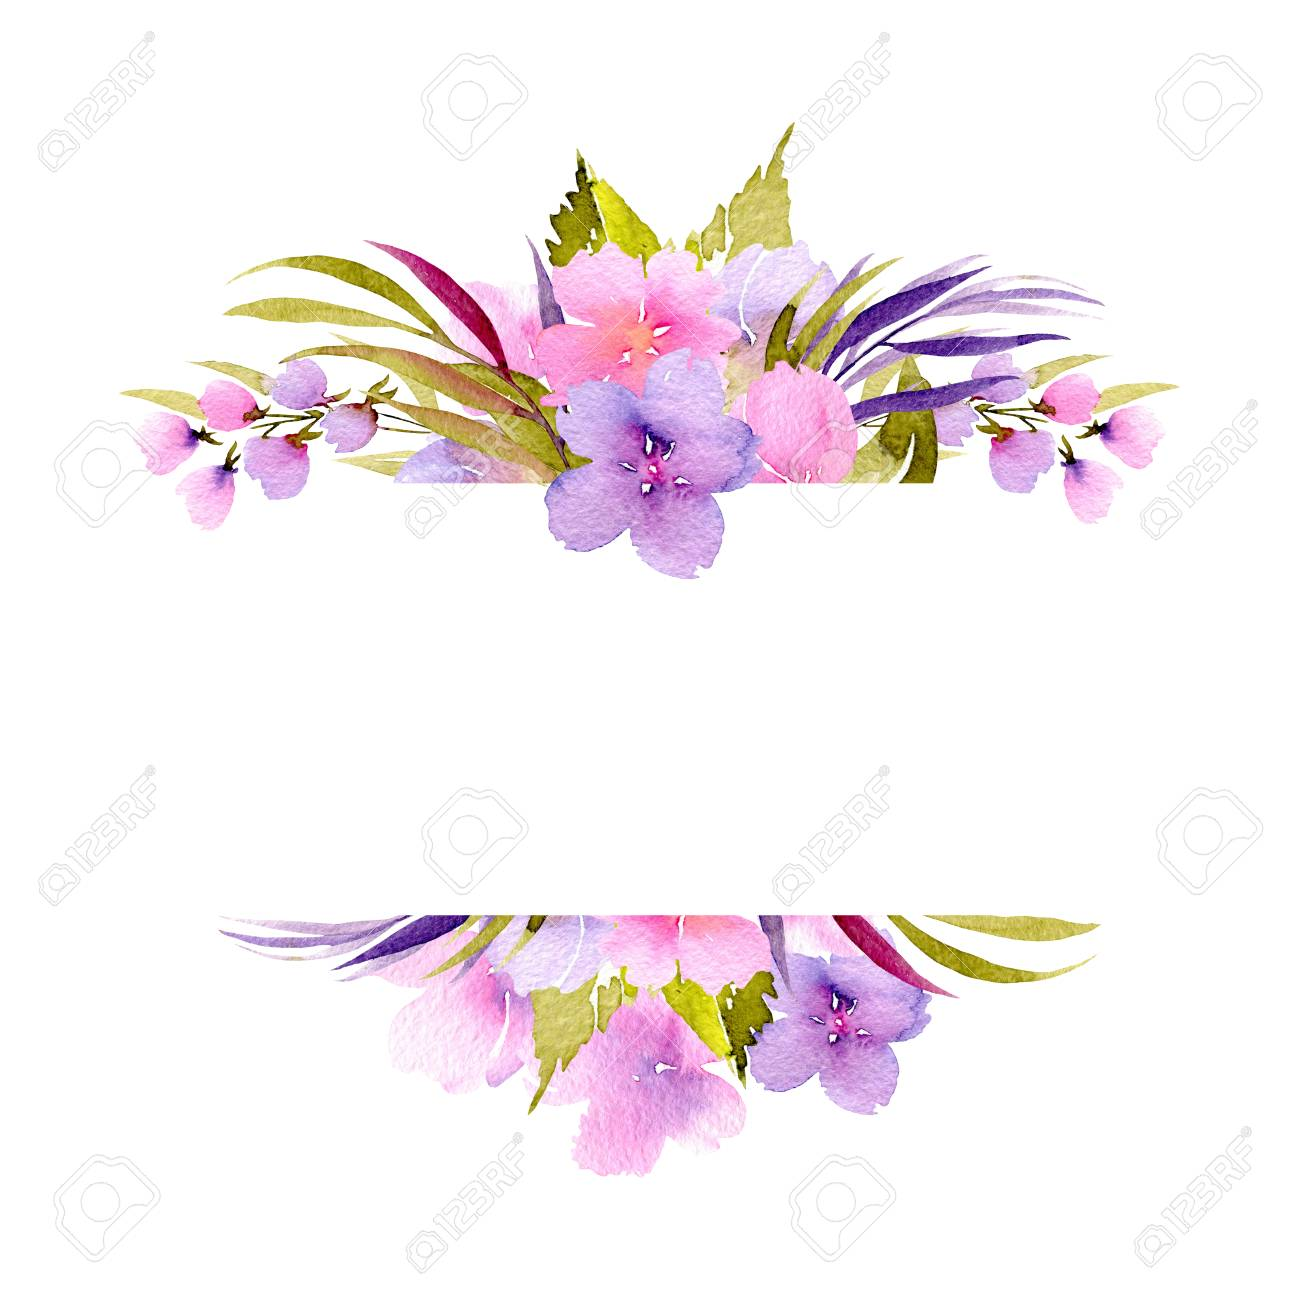 Frame Border With Pink And Purple Small Wildflowers And Green